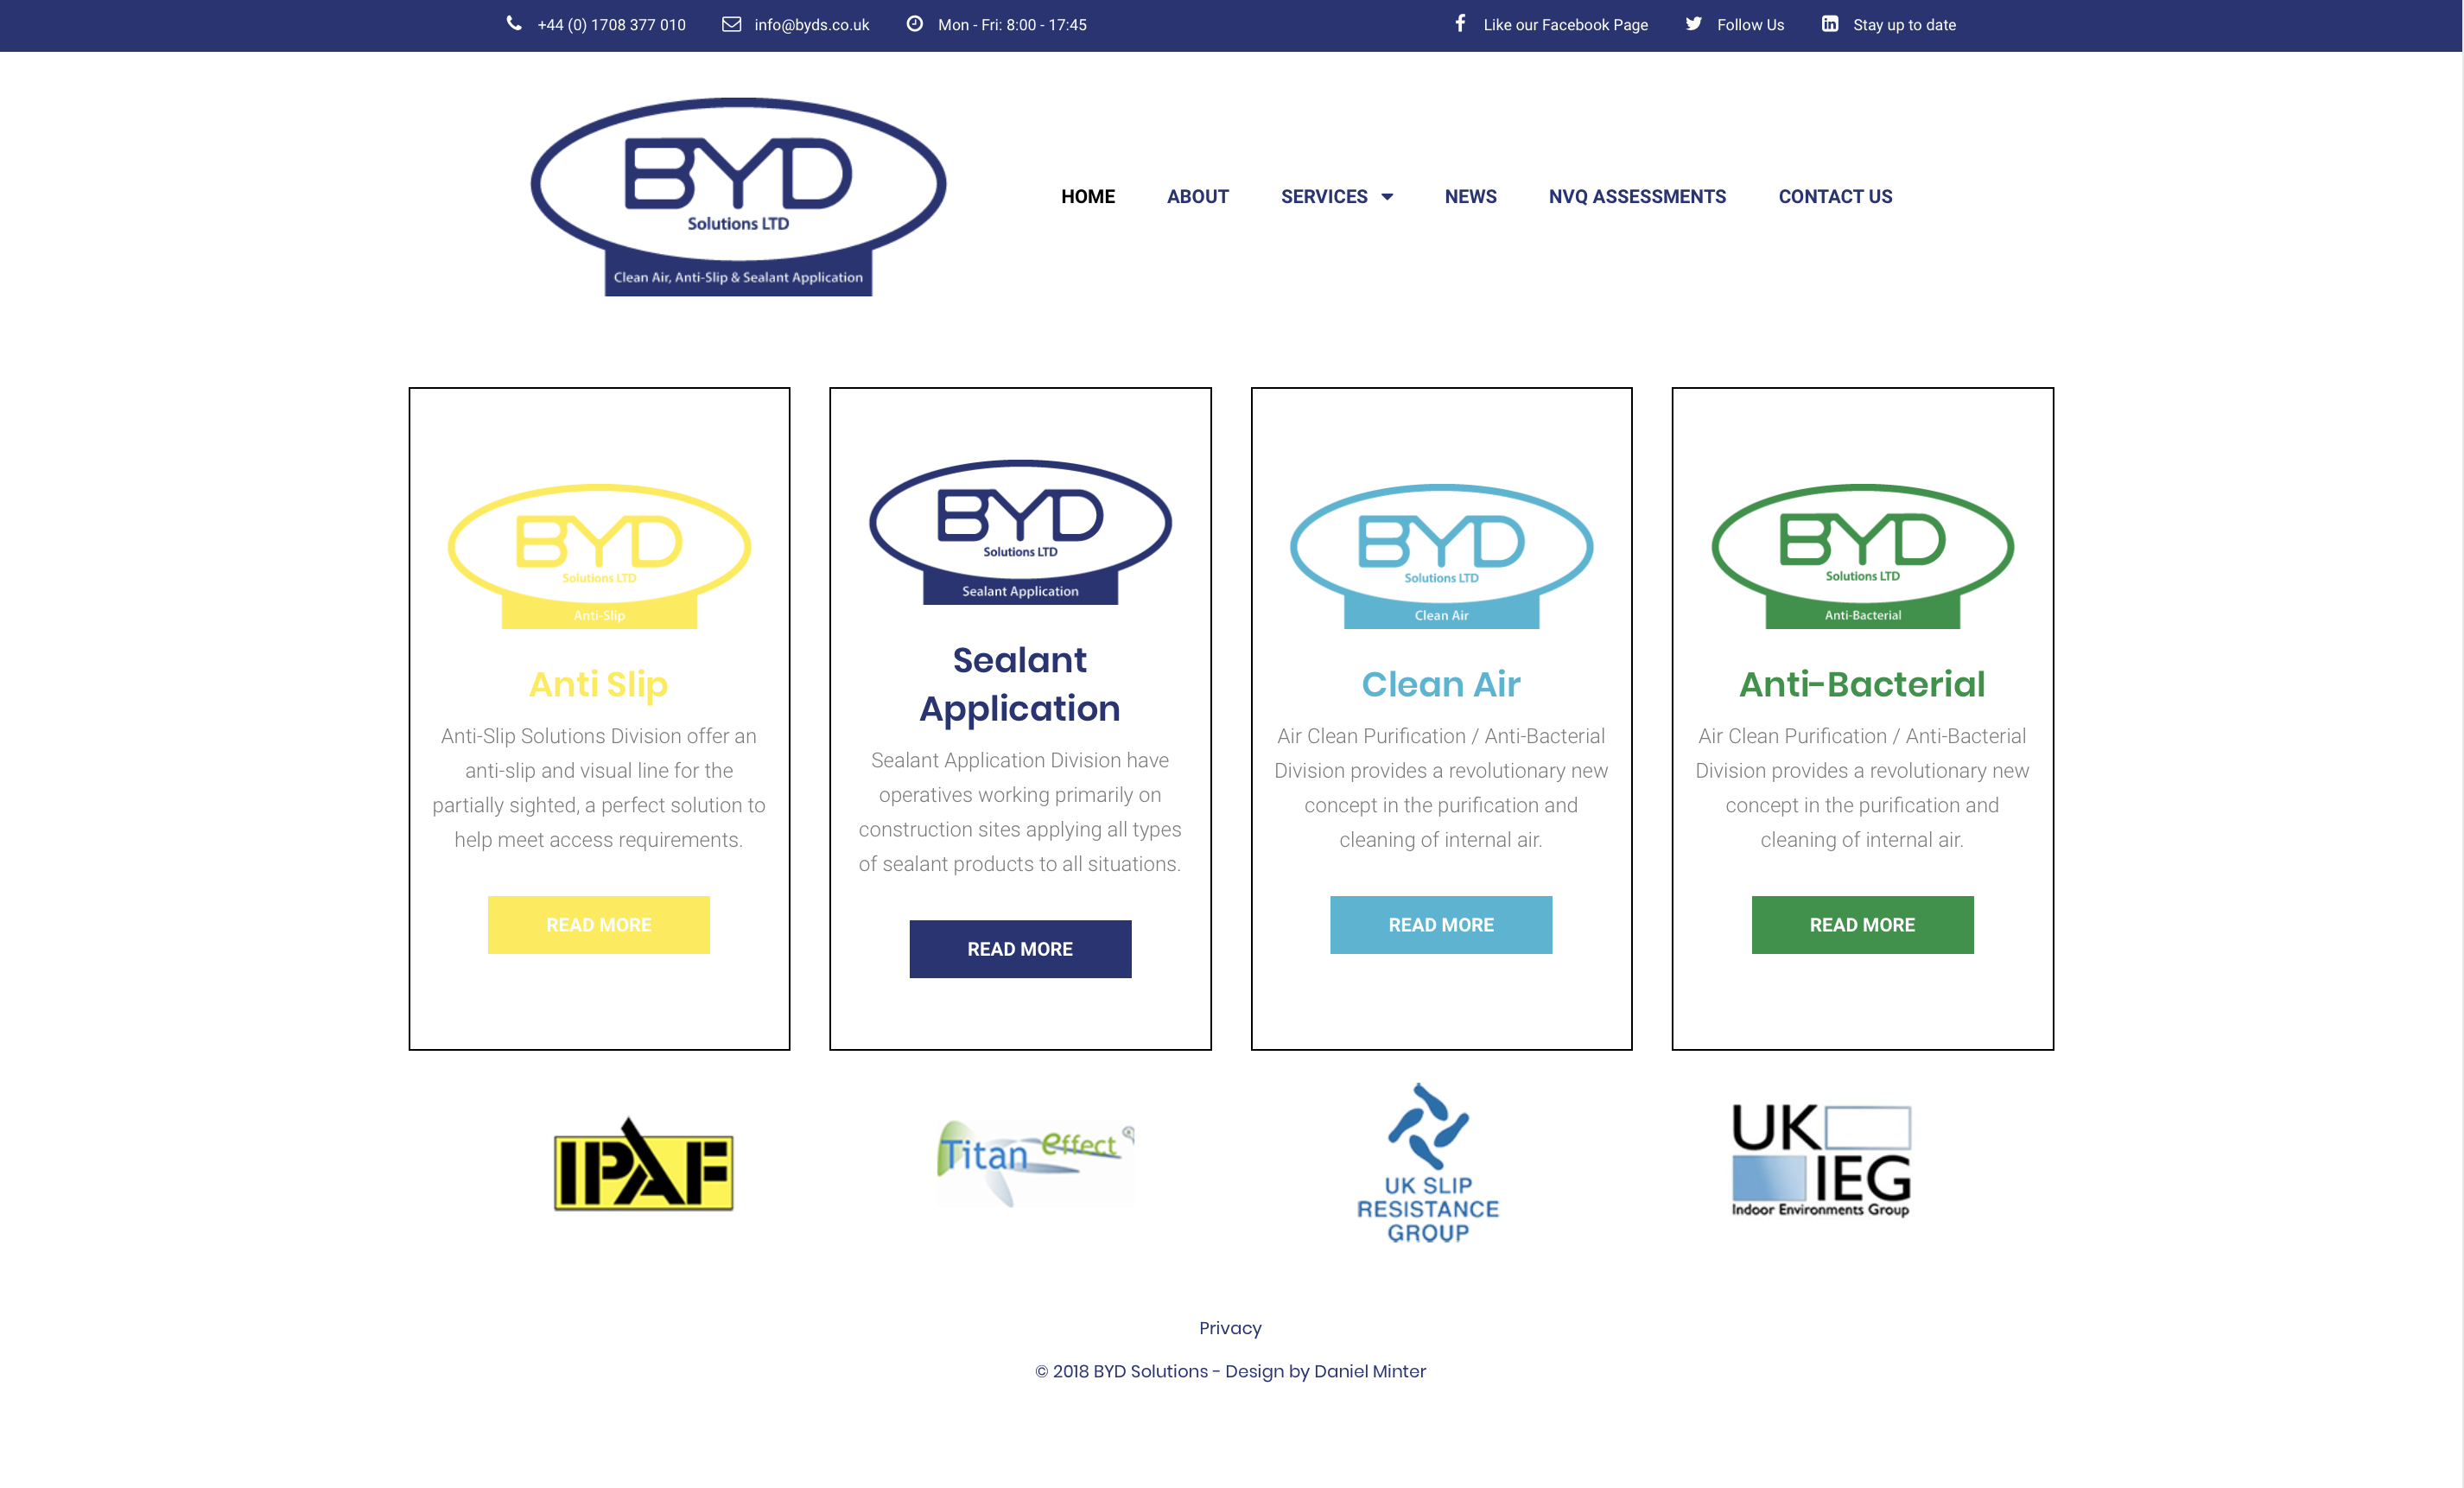 BYD Solutions